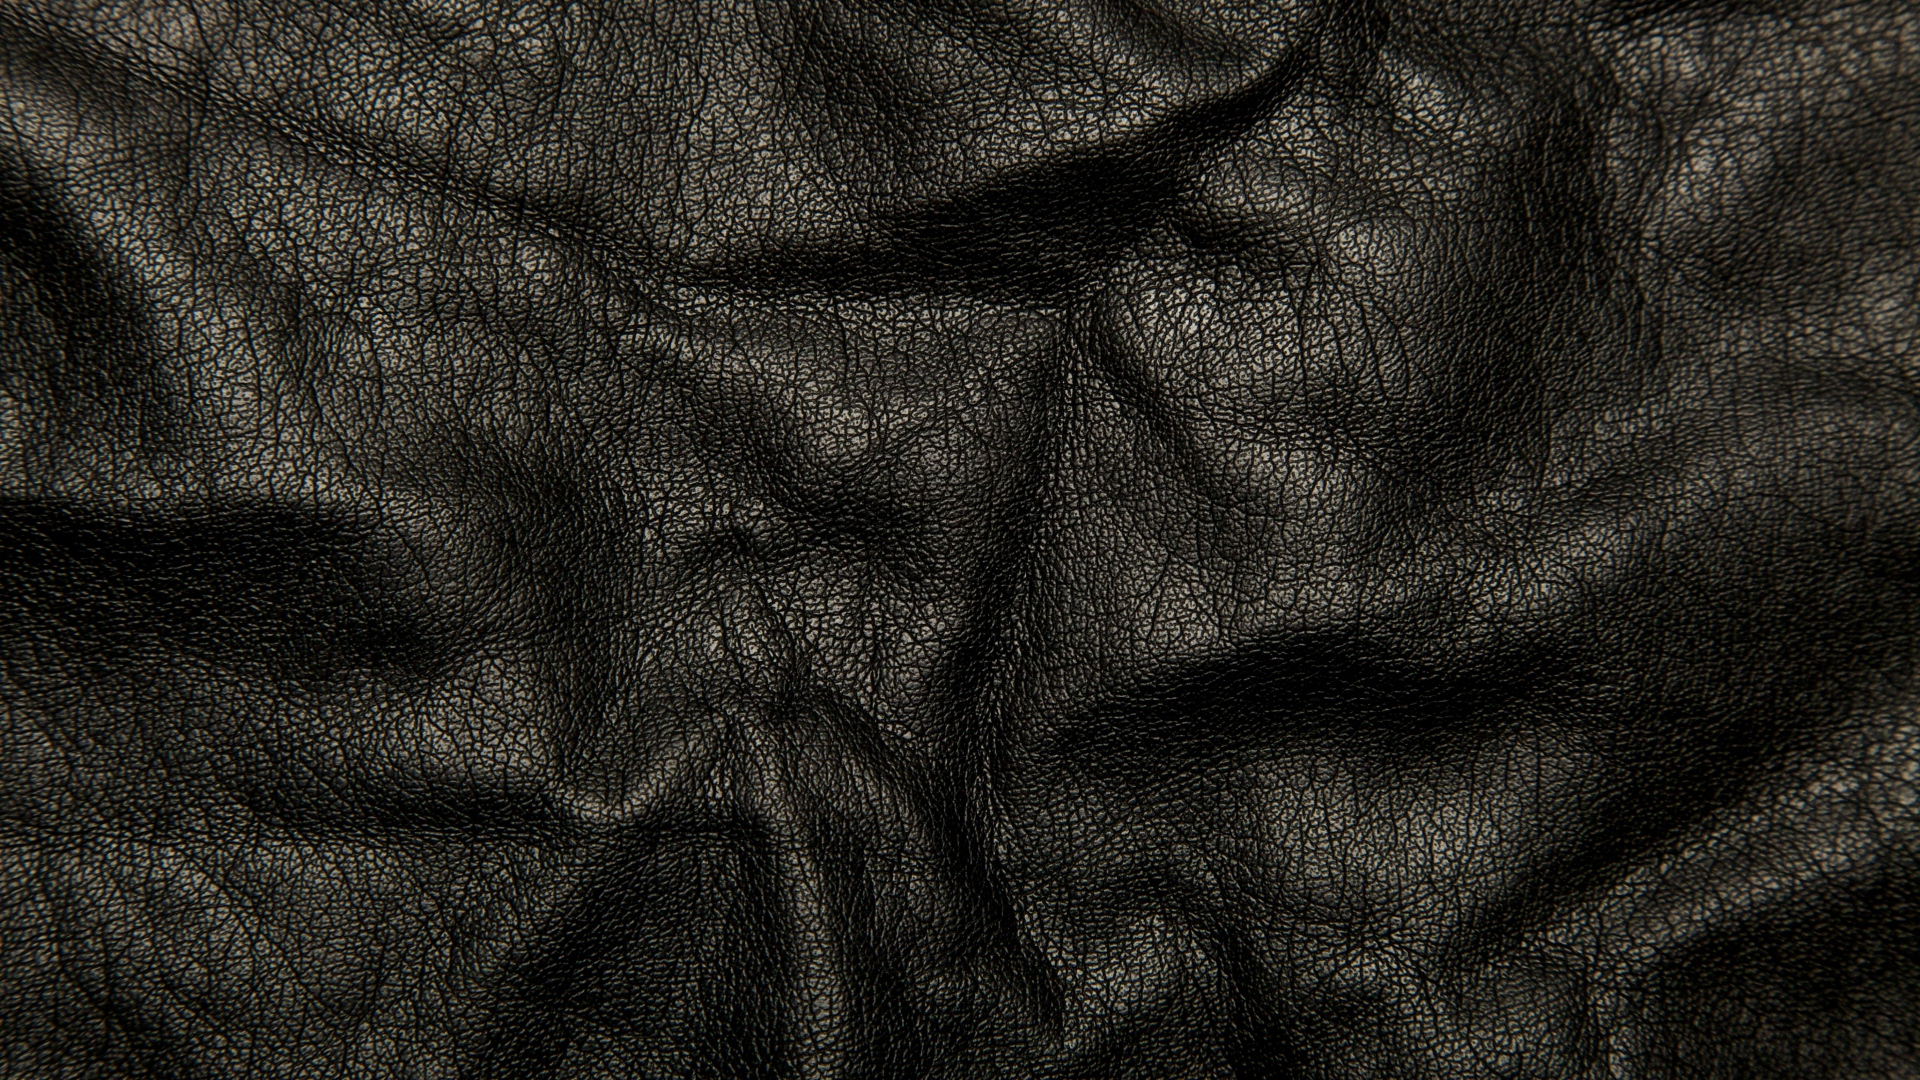 Download Wallpaper 1920x1080 Leather Black Background Texture